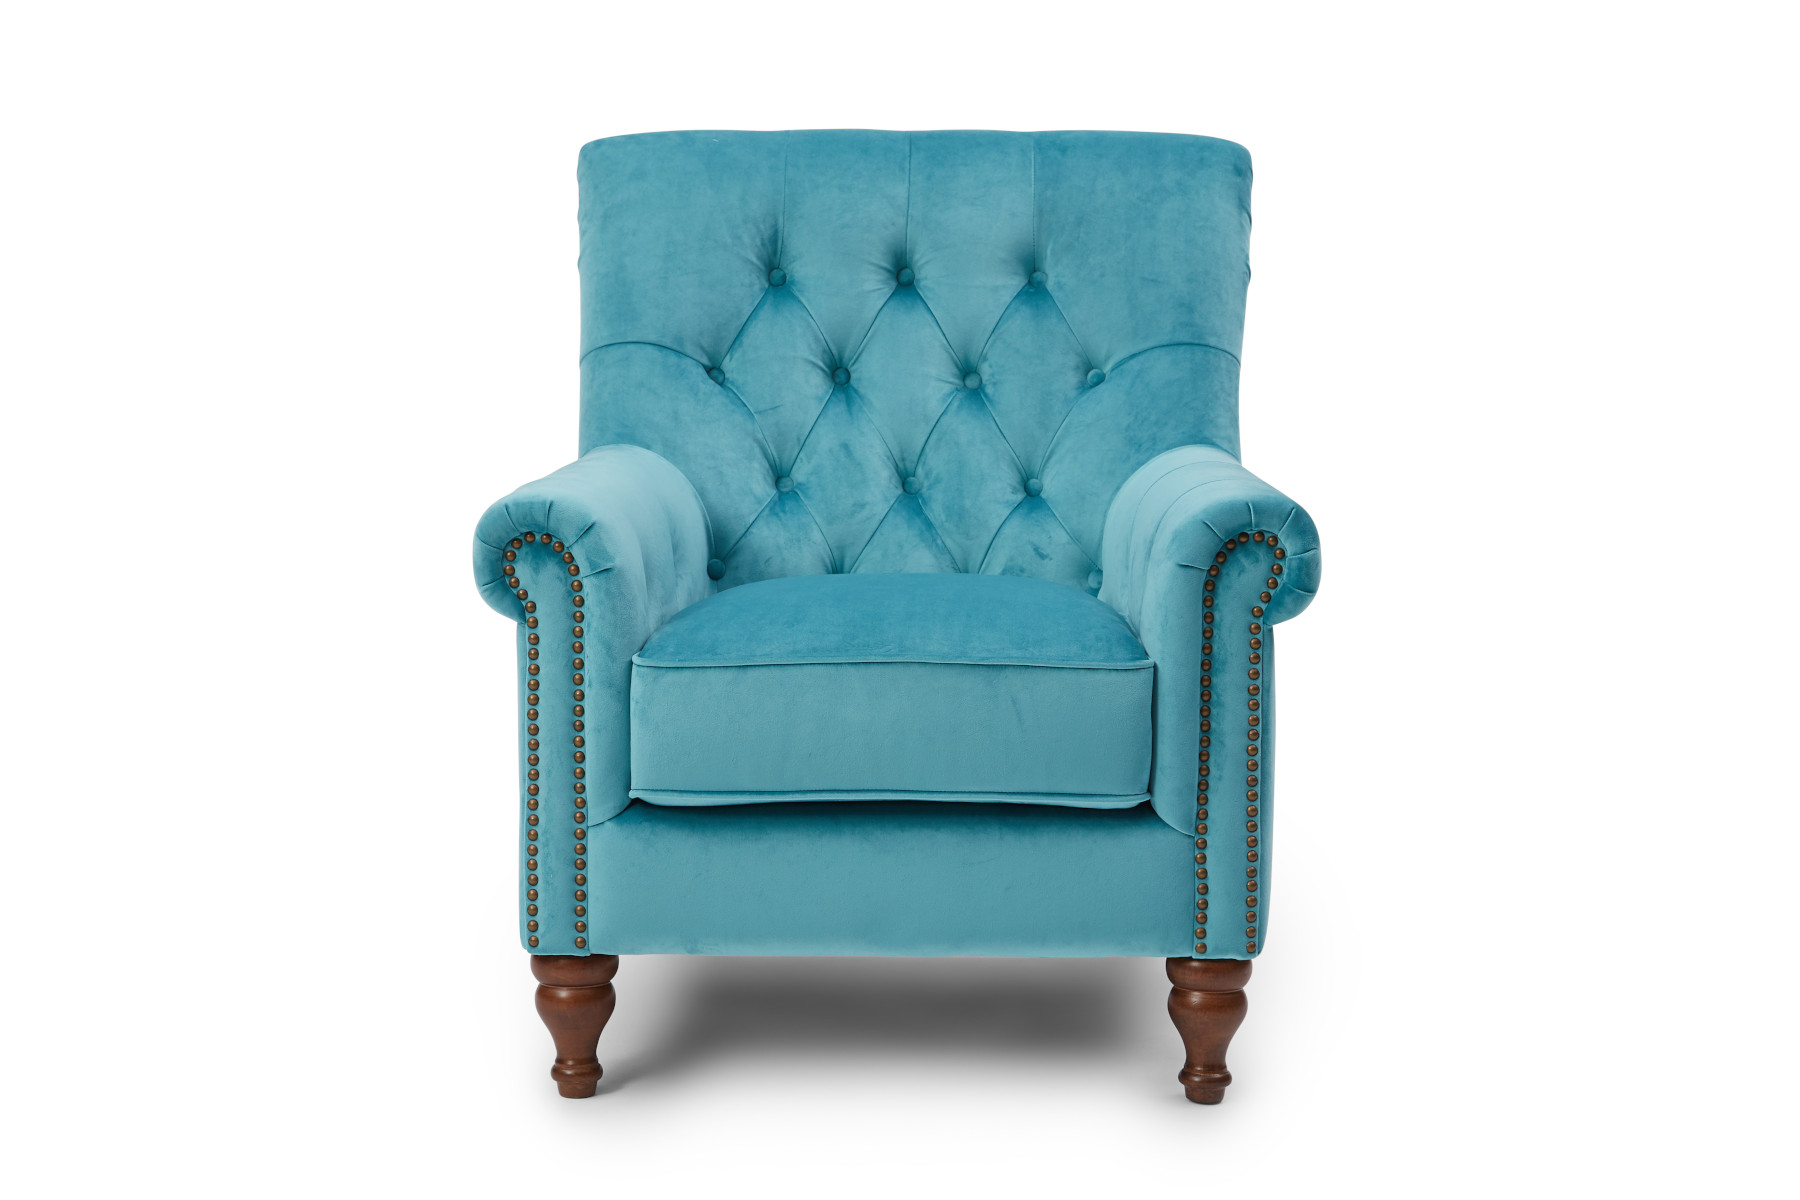 Kennedy Nester Accent Chair - Teal